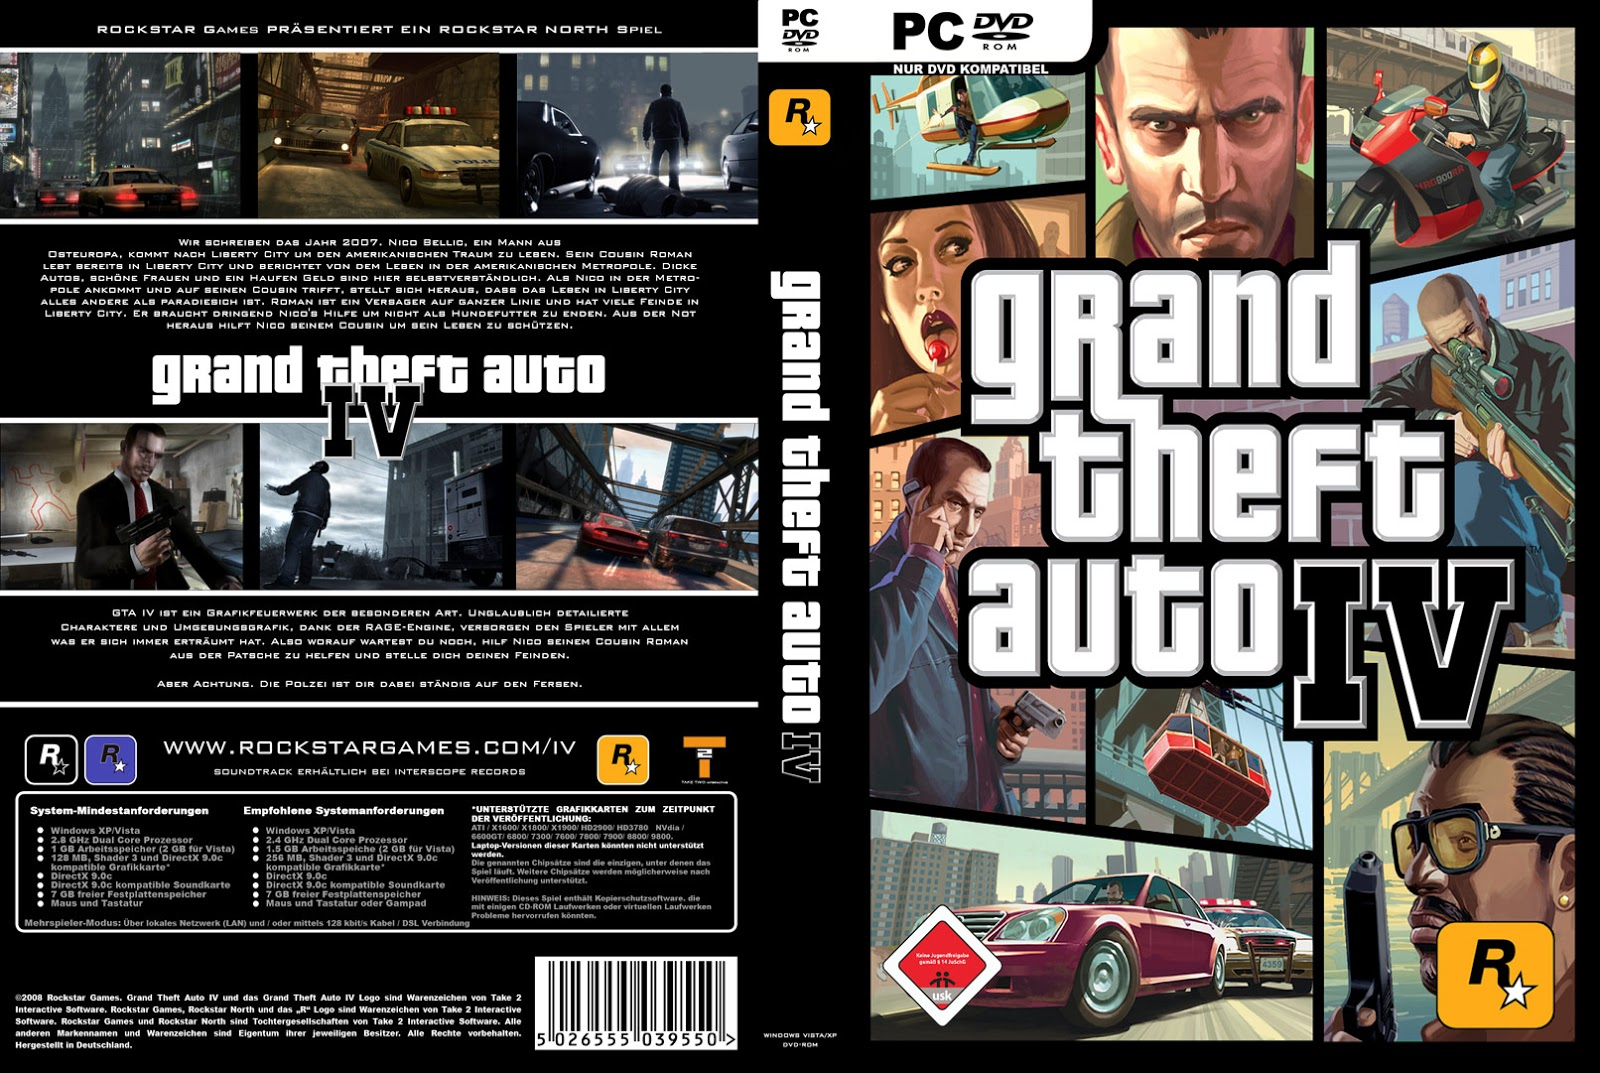 Grand theft auto iv free download for pc muhammad asad gamings.